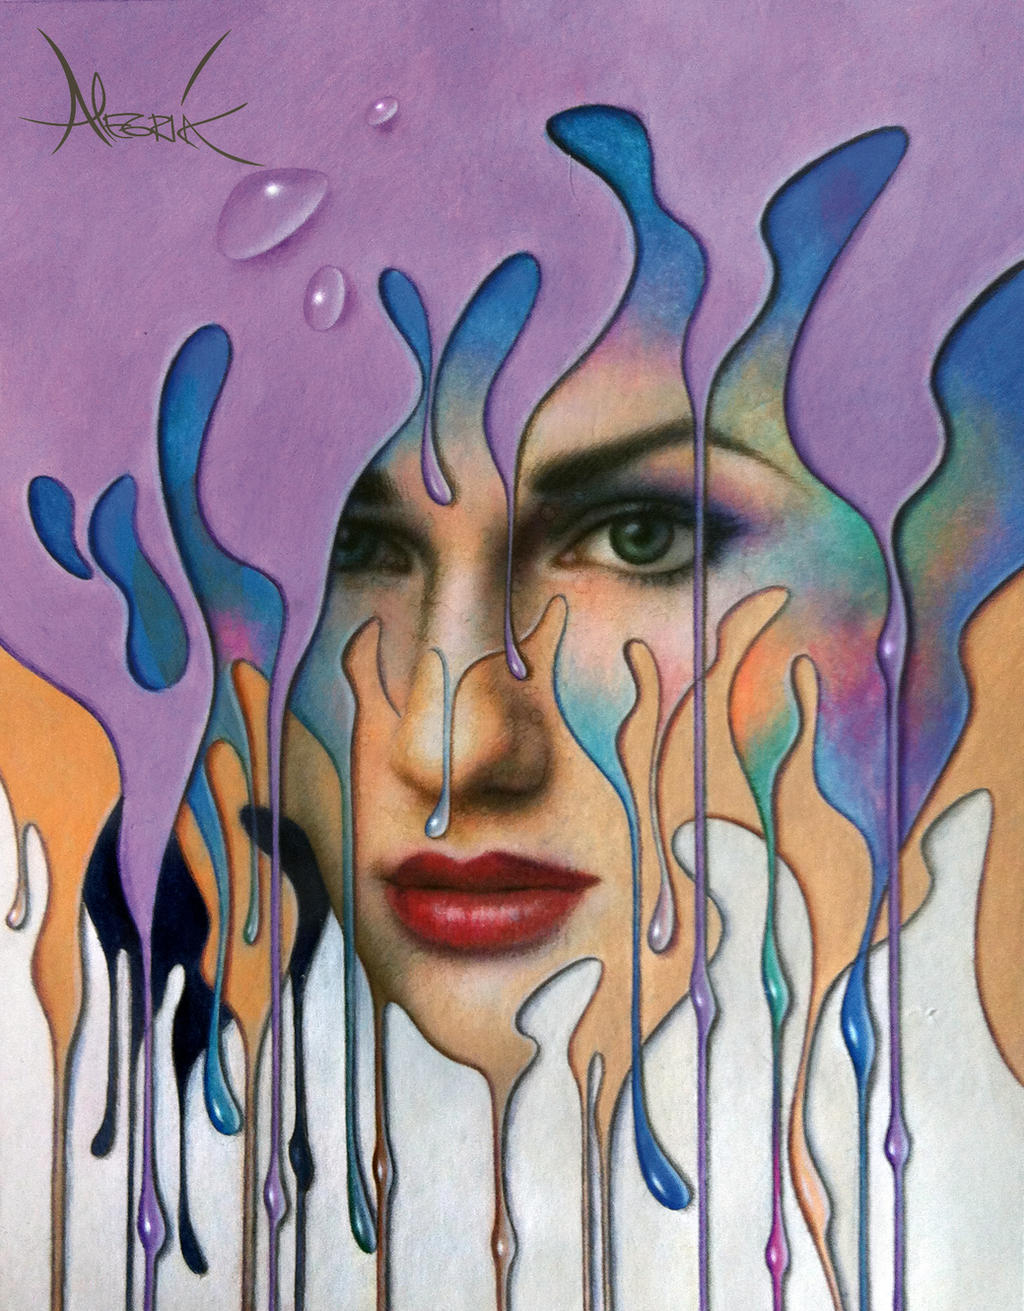 FLUID VISION by LEONALEGRIA